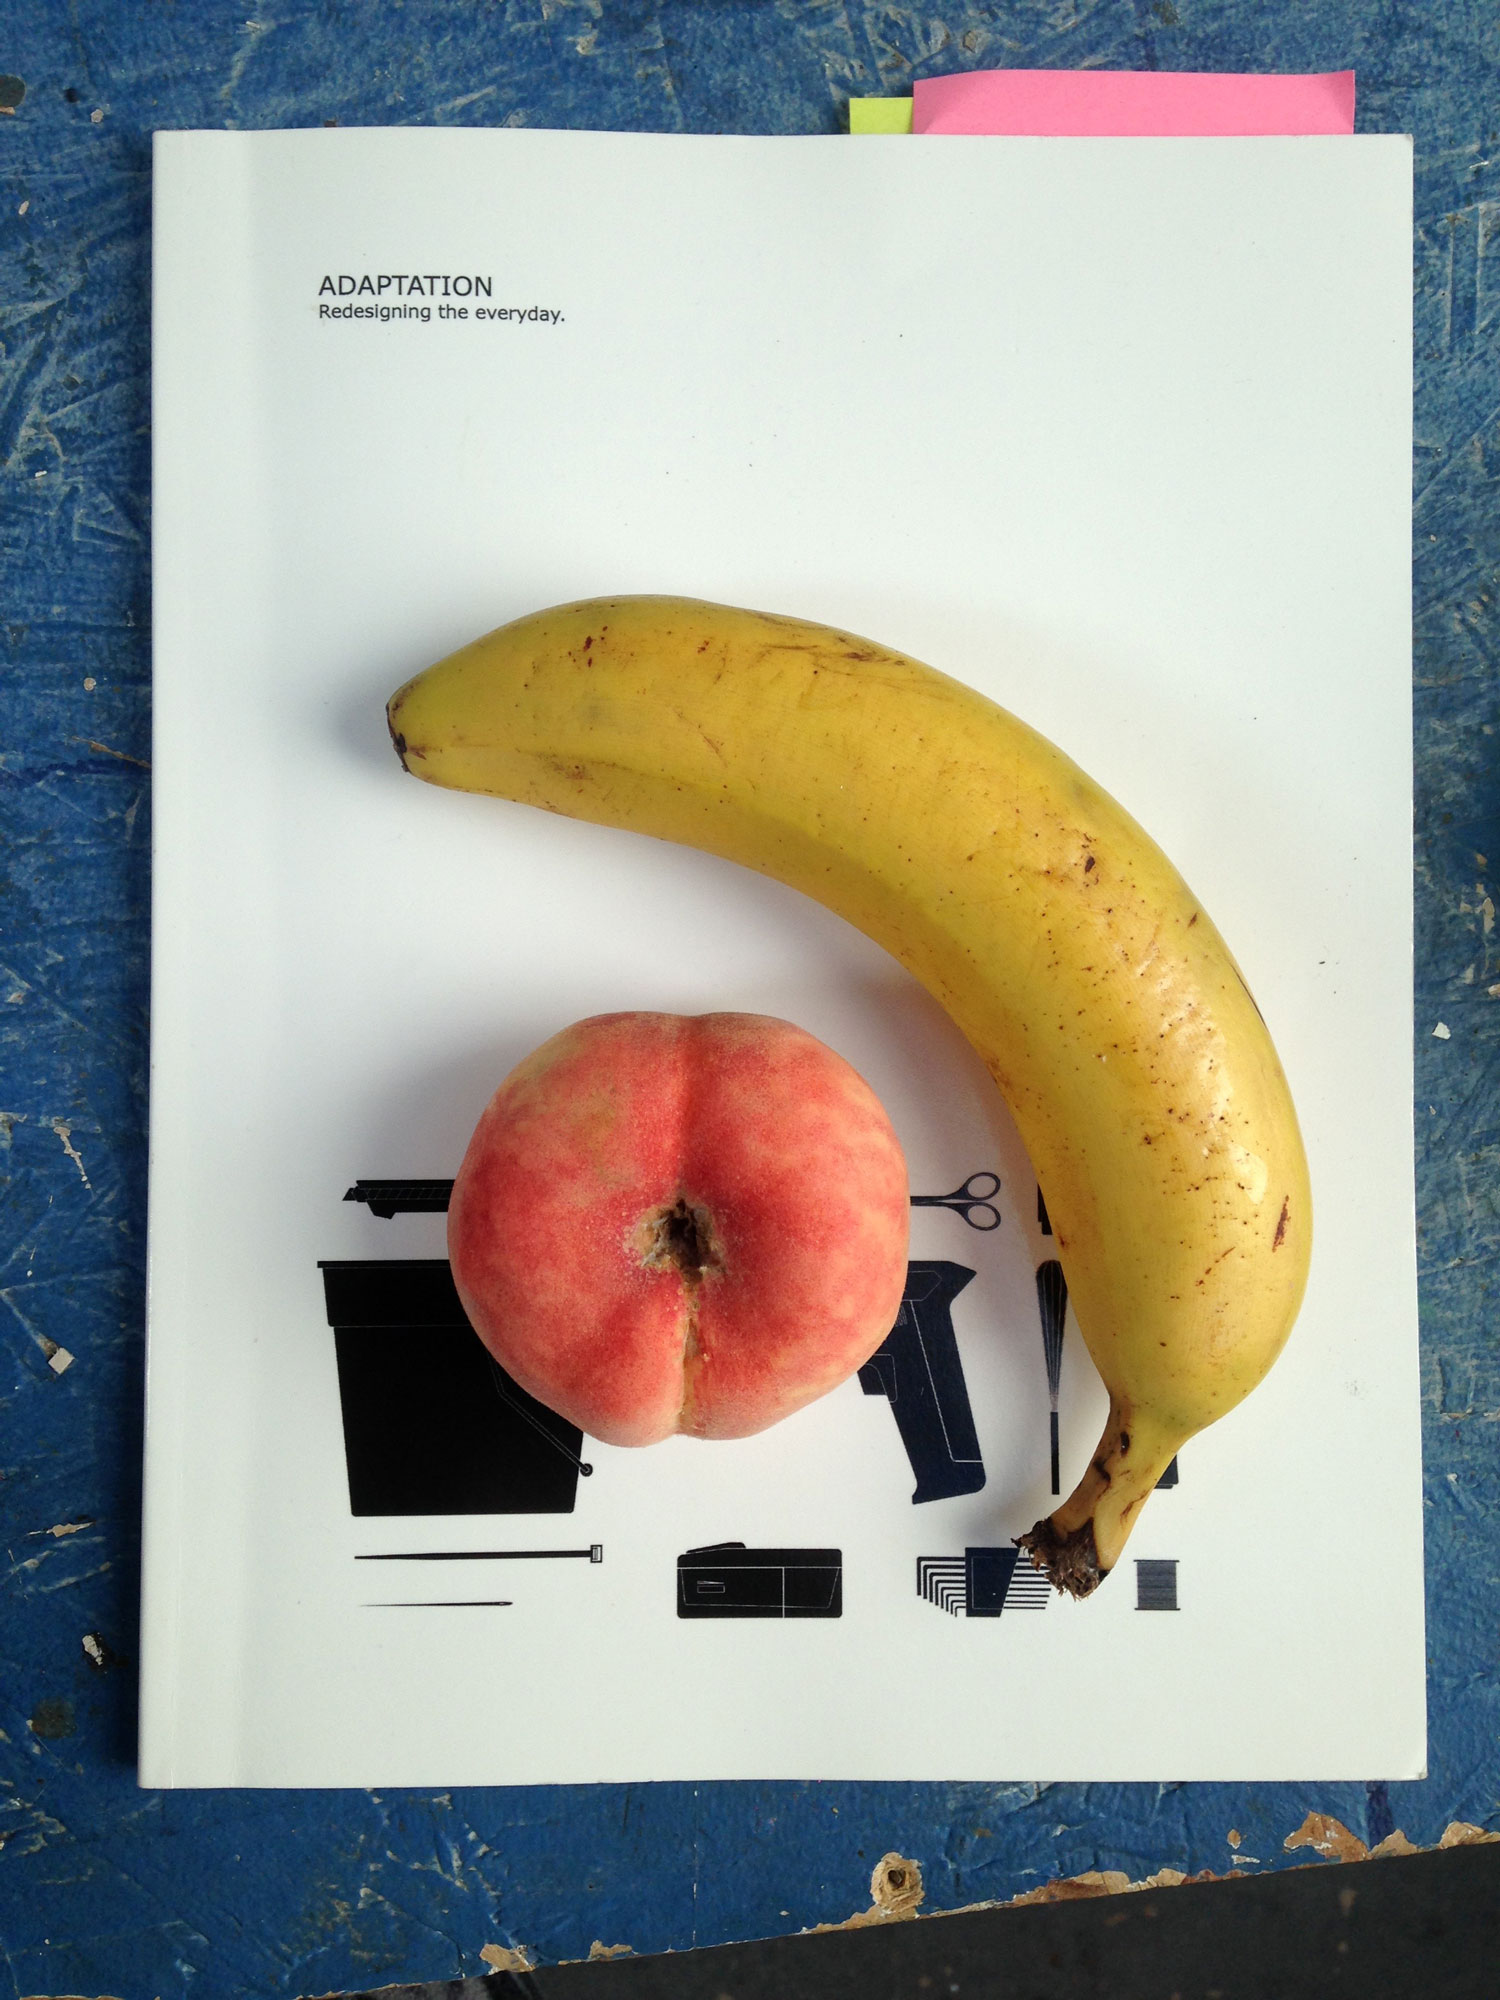 Adaptation: Redesigning the Everyday book with banana and peach placed on top